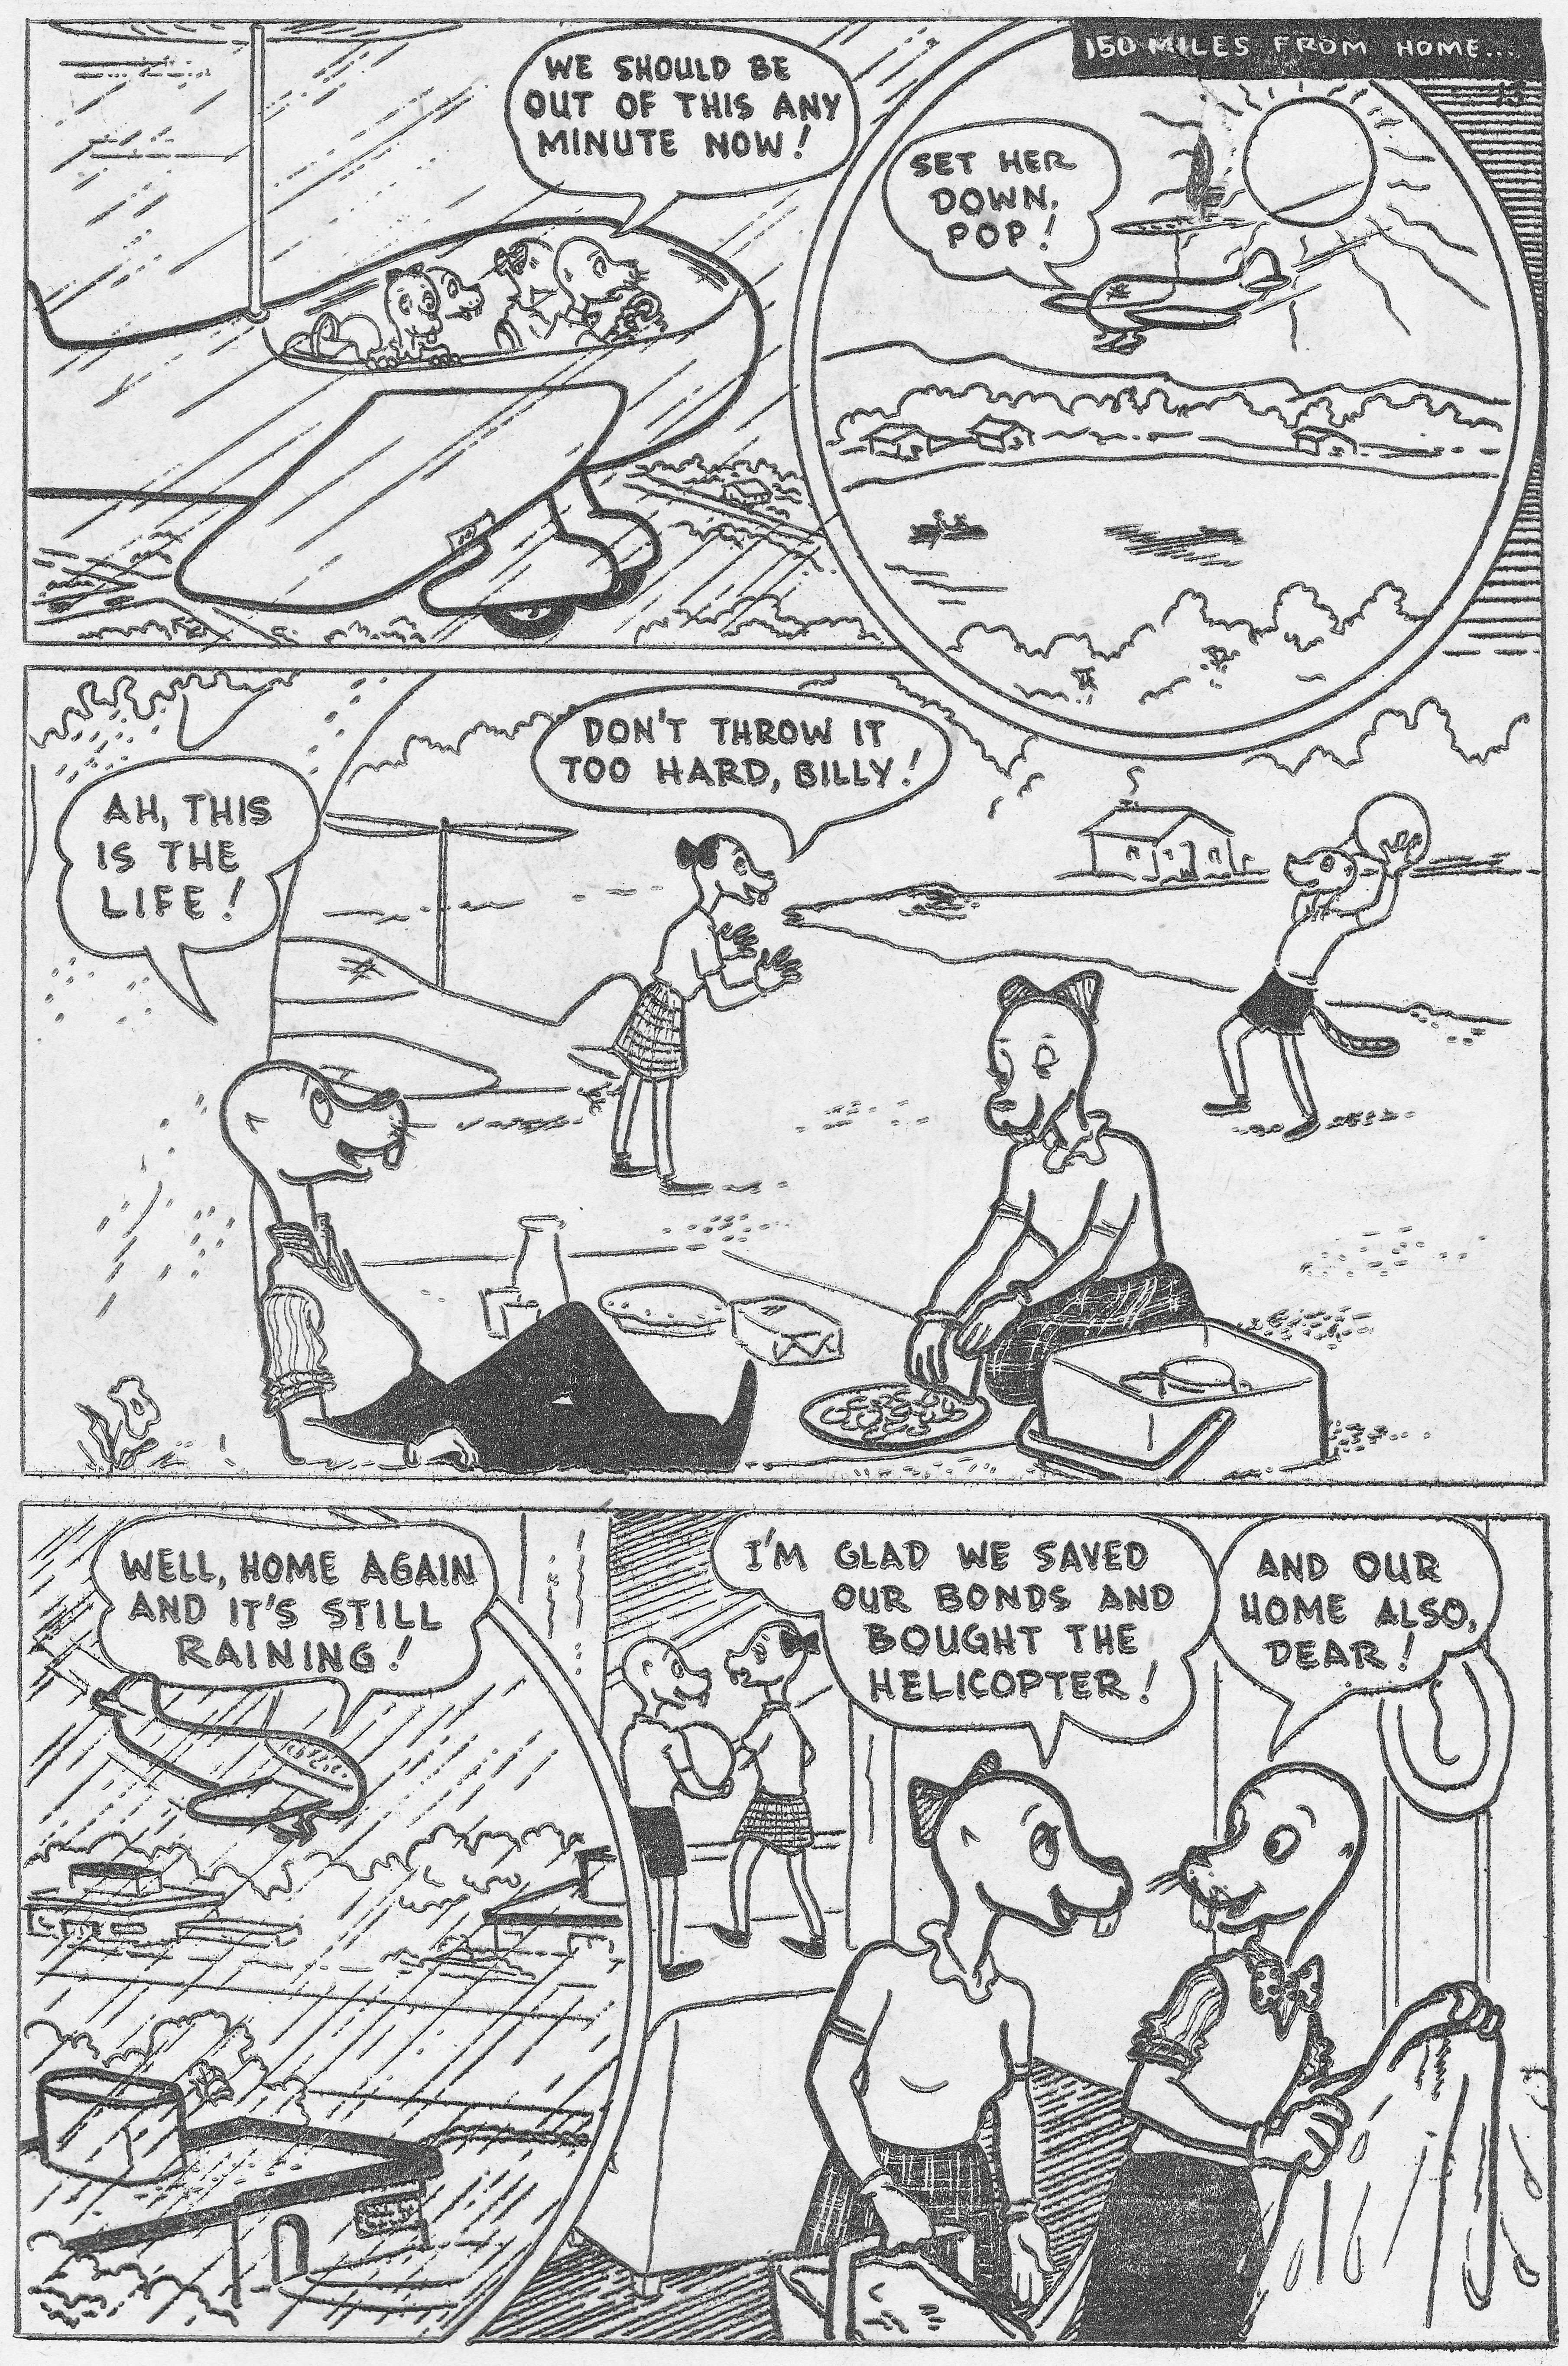 C:\Users\Robert\Documents\CARTOONING ILLUSTRATION ANIMATION\IMAGE CARTOON\IMAGE CARTOON B\BERT BEAVER, Canadian Heroes, 5-1, Feb 1945, 13.jpg